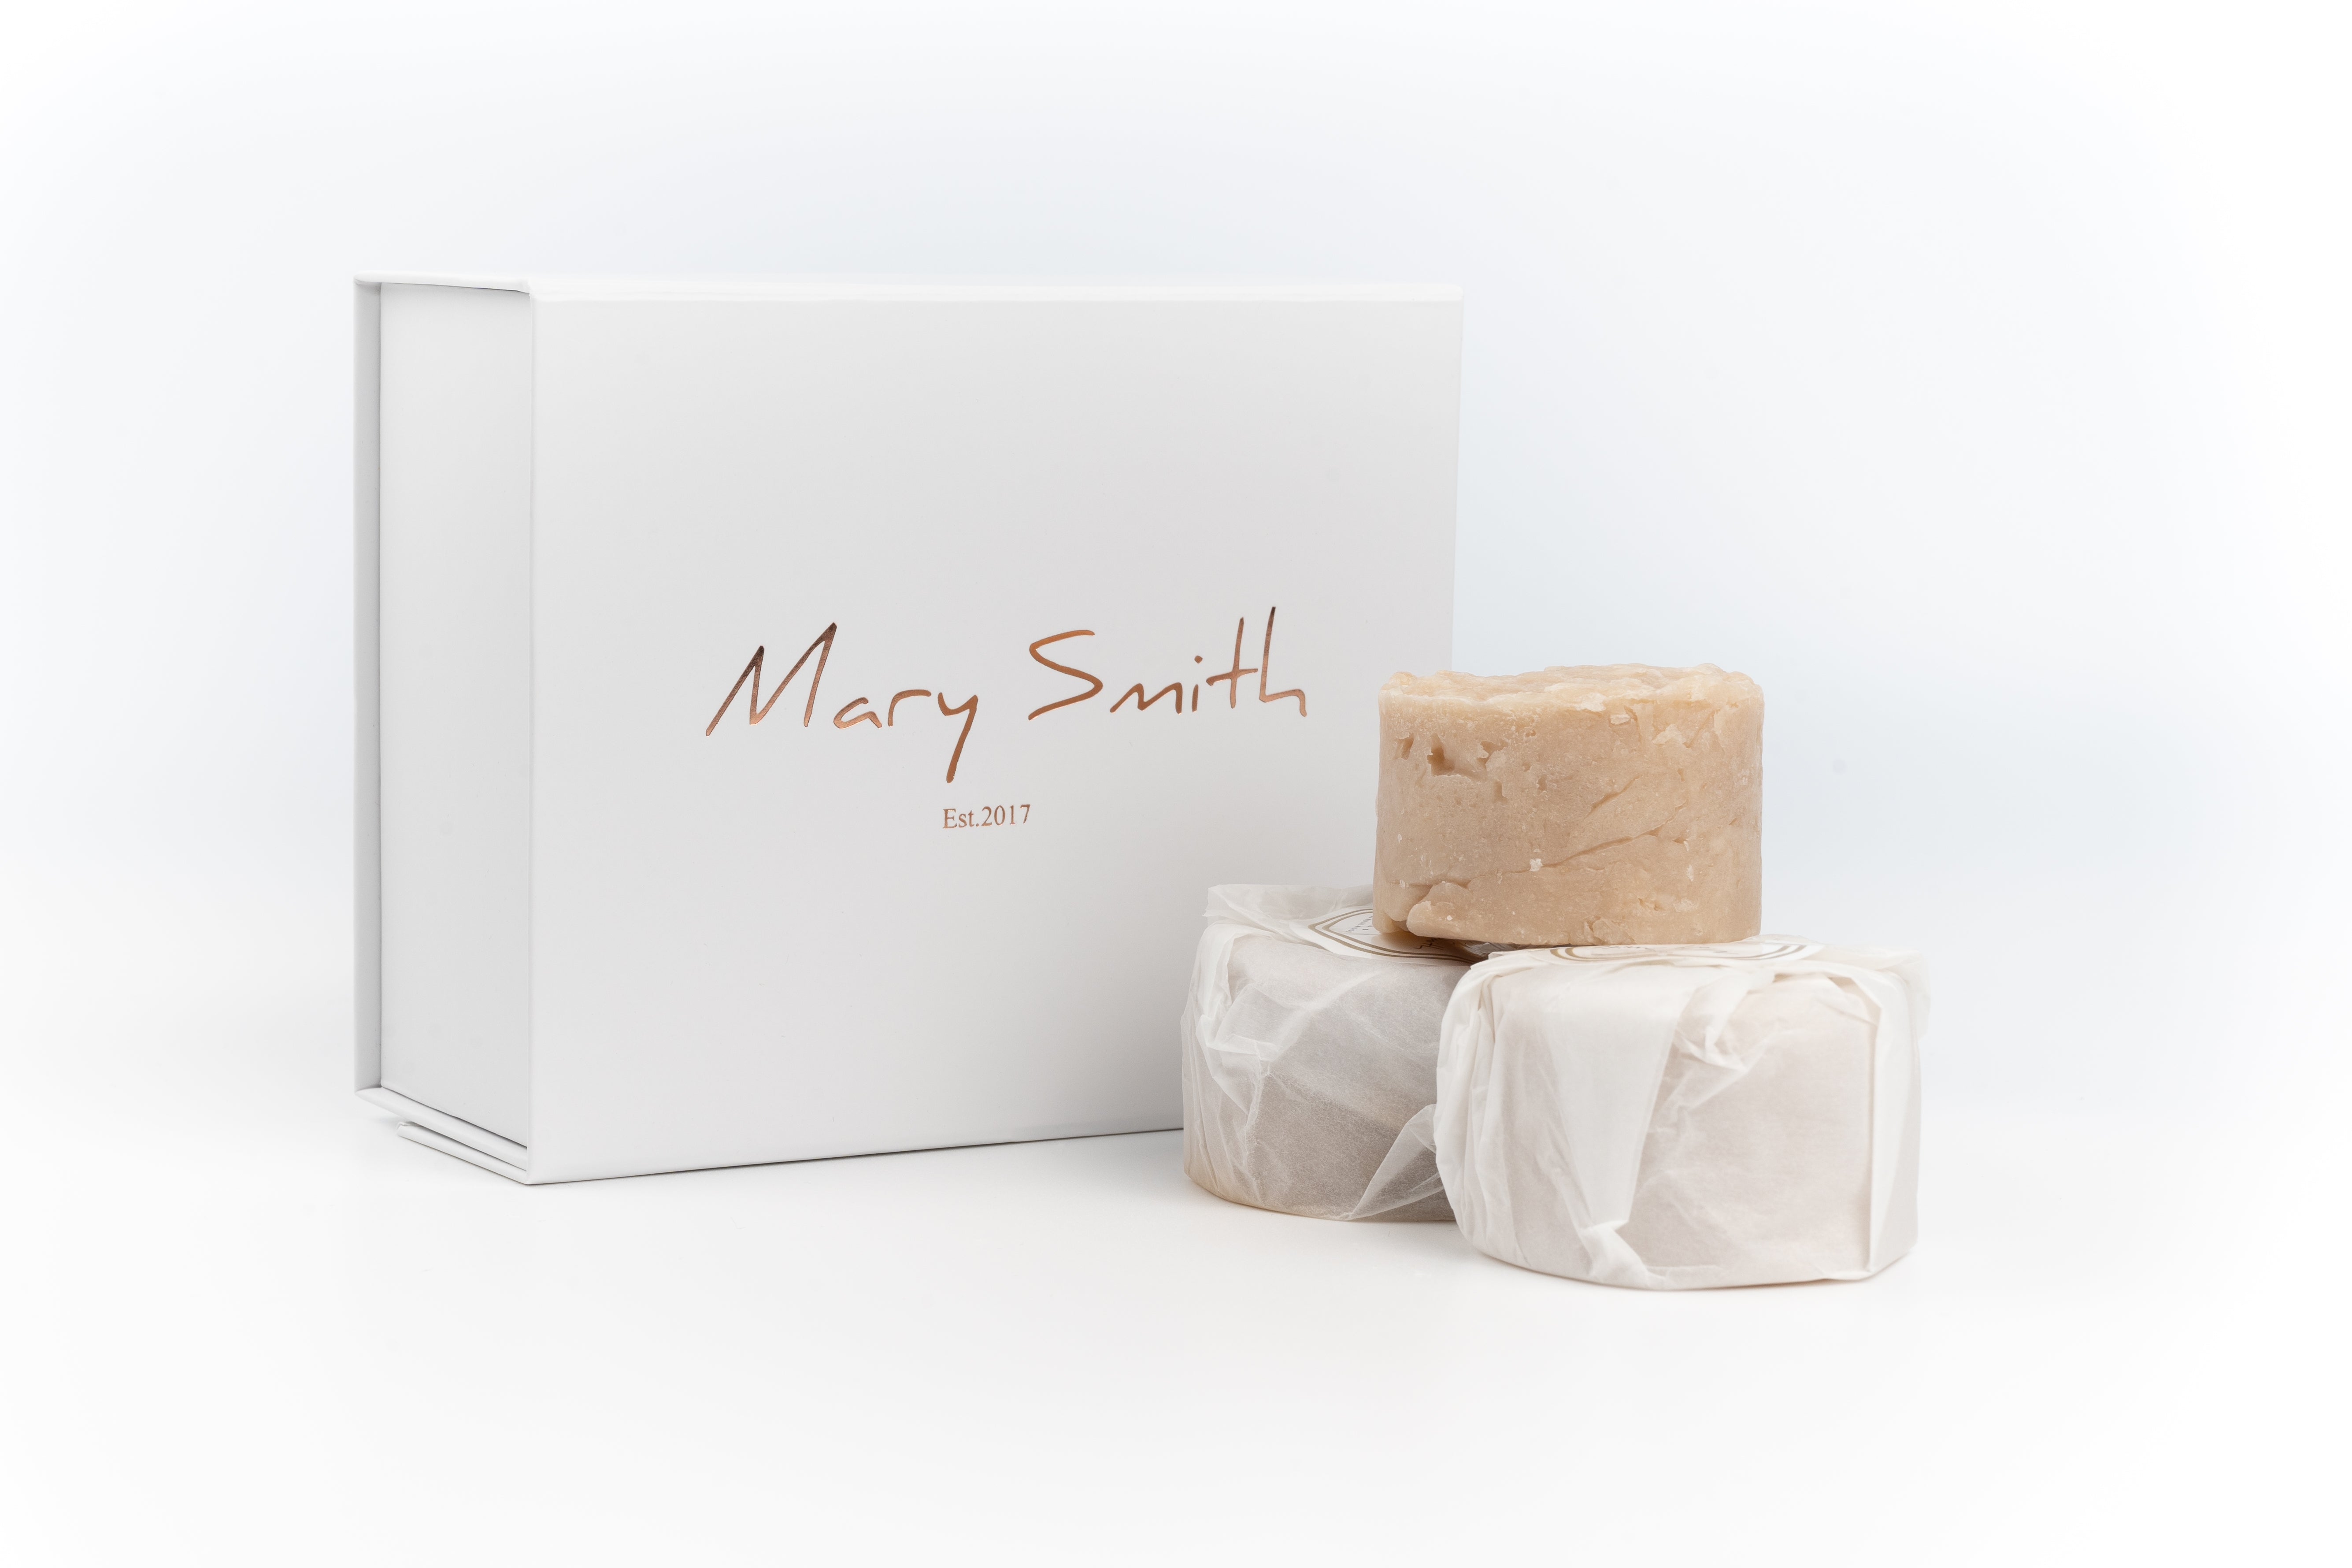 100% natural body soaps